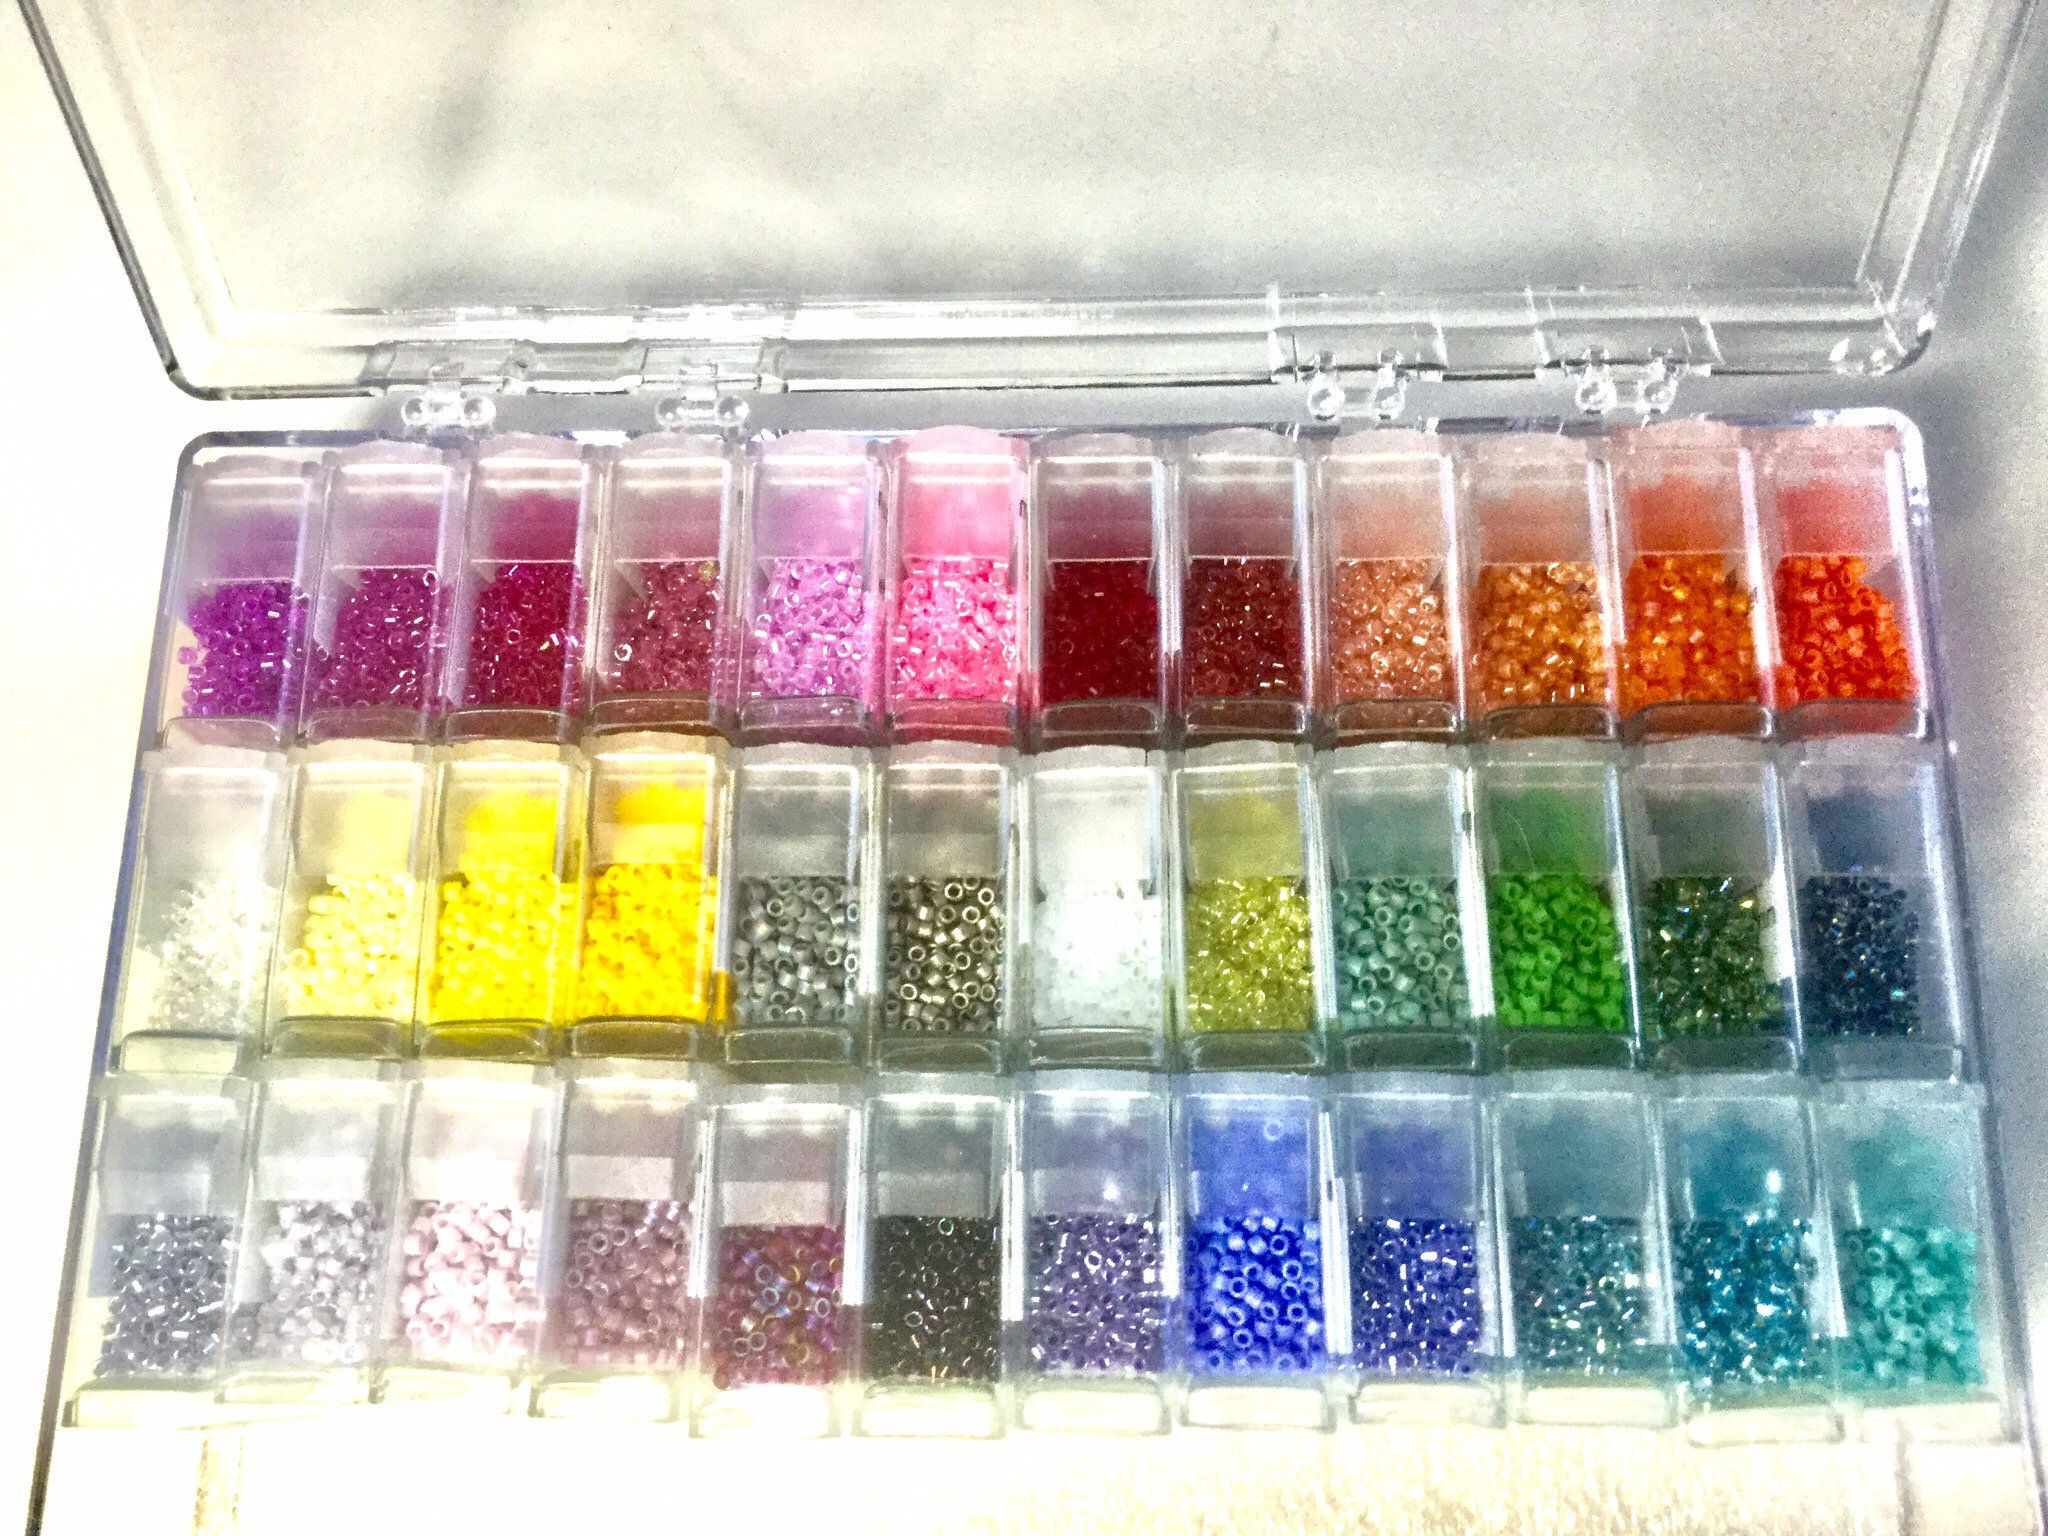 28 Slots, 10 Pieces Diamond Painting 4 Pack Clear Storage Containers